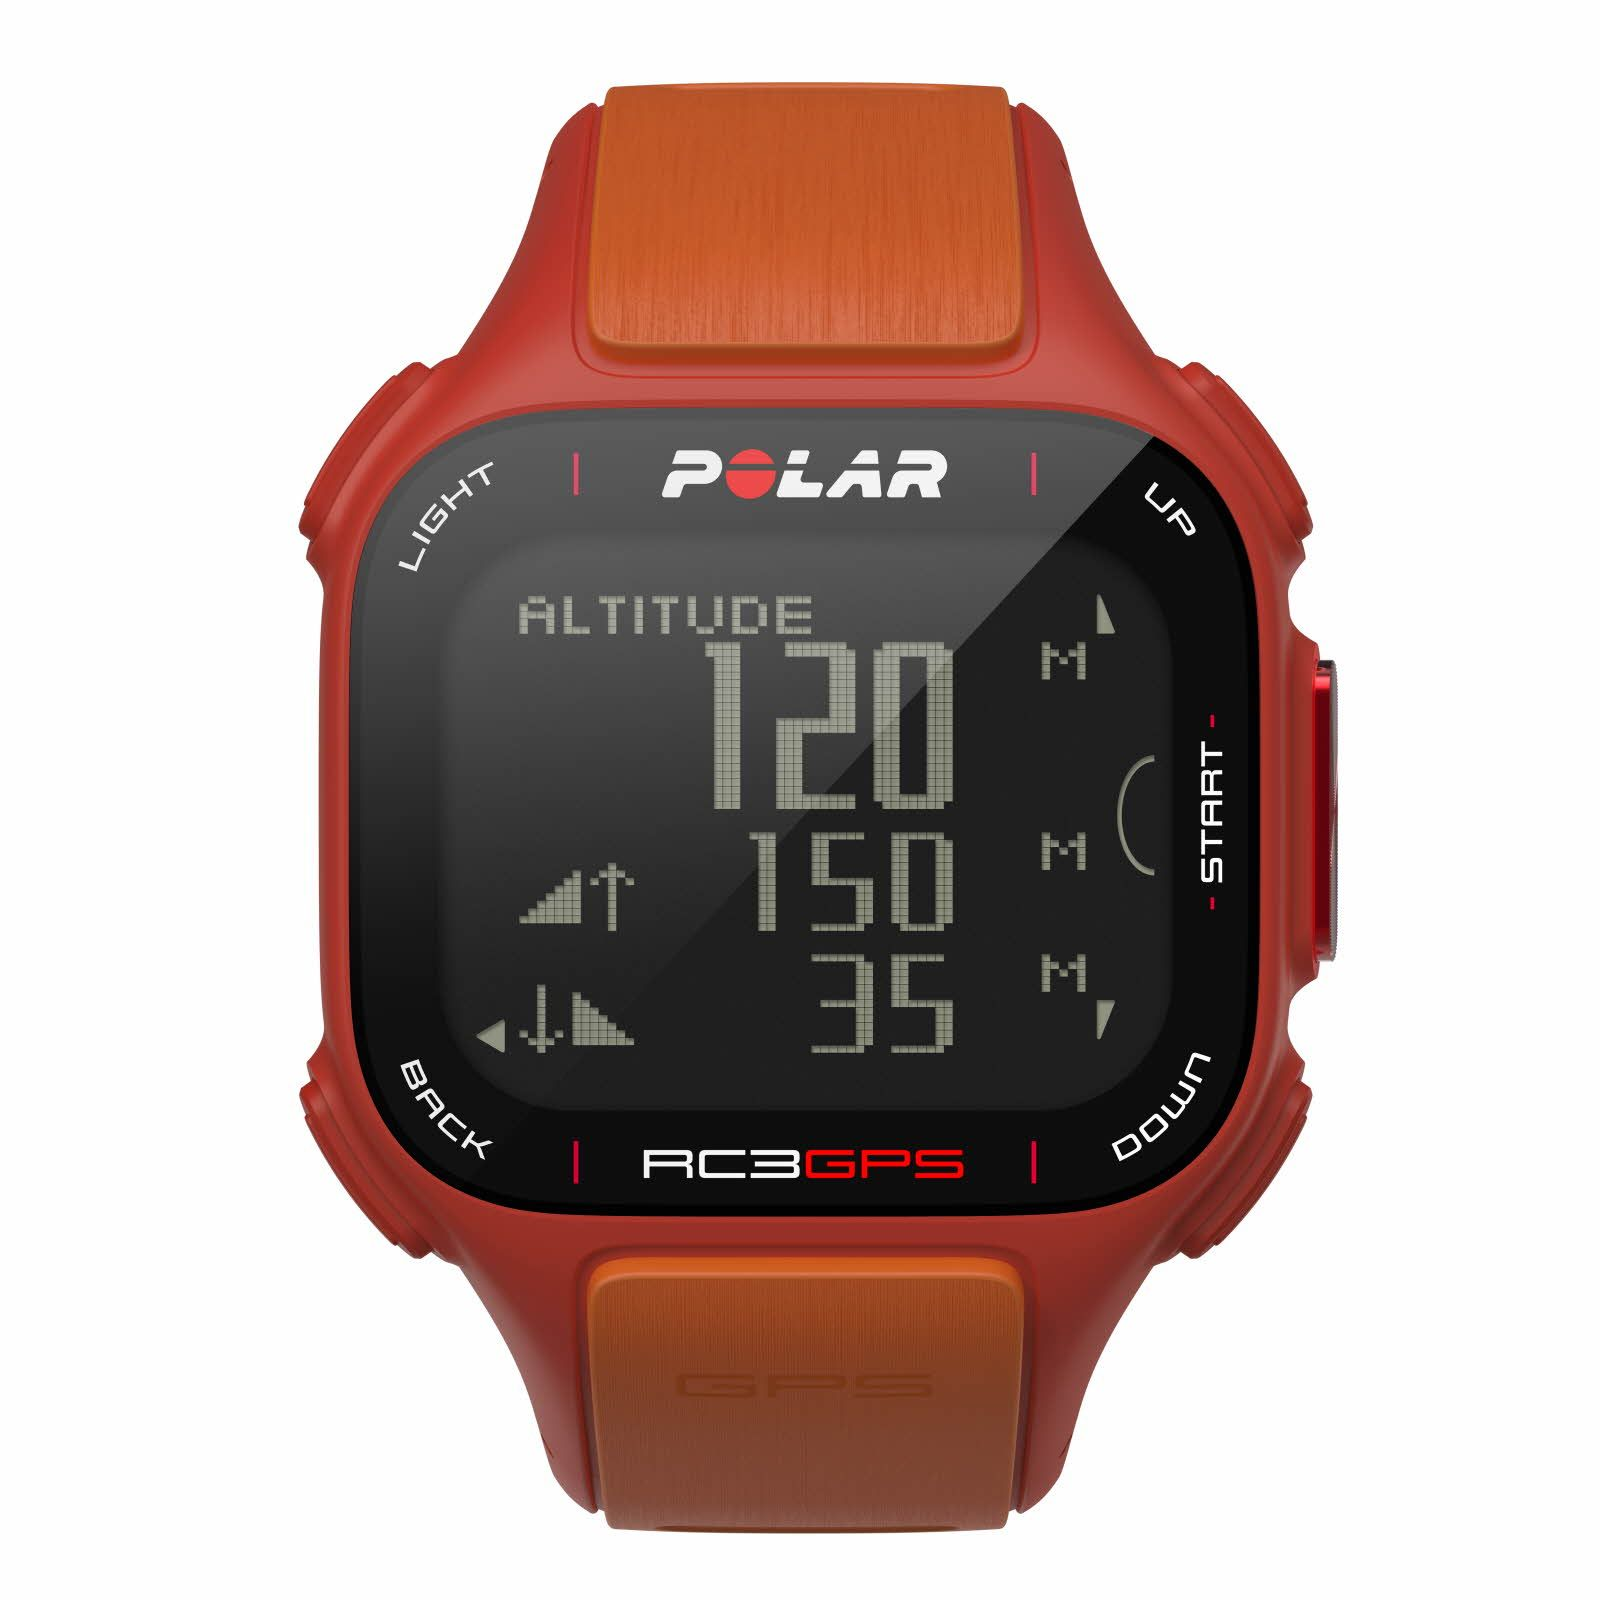 Polar Rc3 Gps Sports Watch together with Smart Waste Management With Carriots together with Esp8266 Weather Station Color Code Published also 162408 Massive Tech Specials In Makro Carnival Opening Today further Entrepreneurship Education And Training. on smart start gps